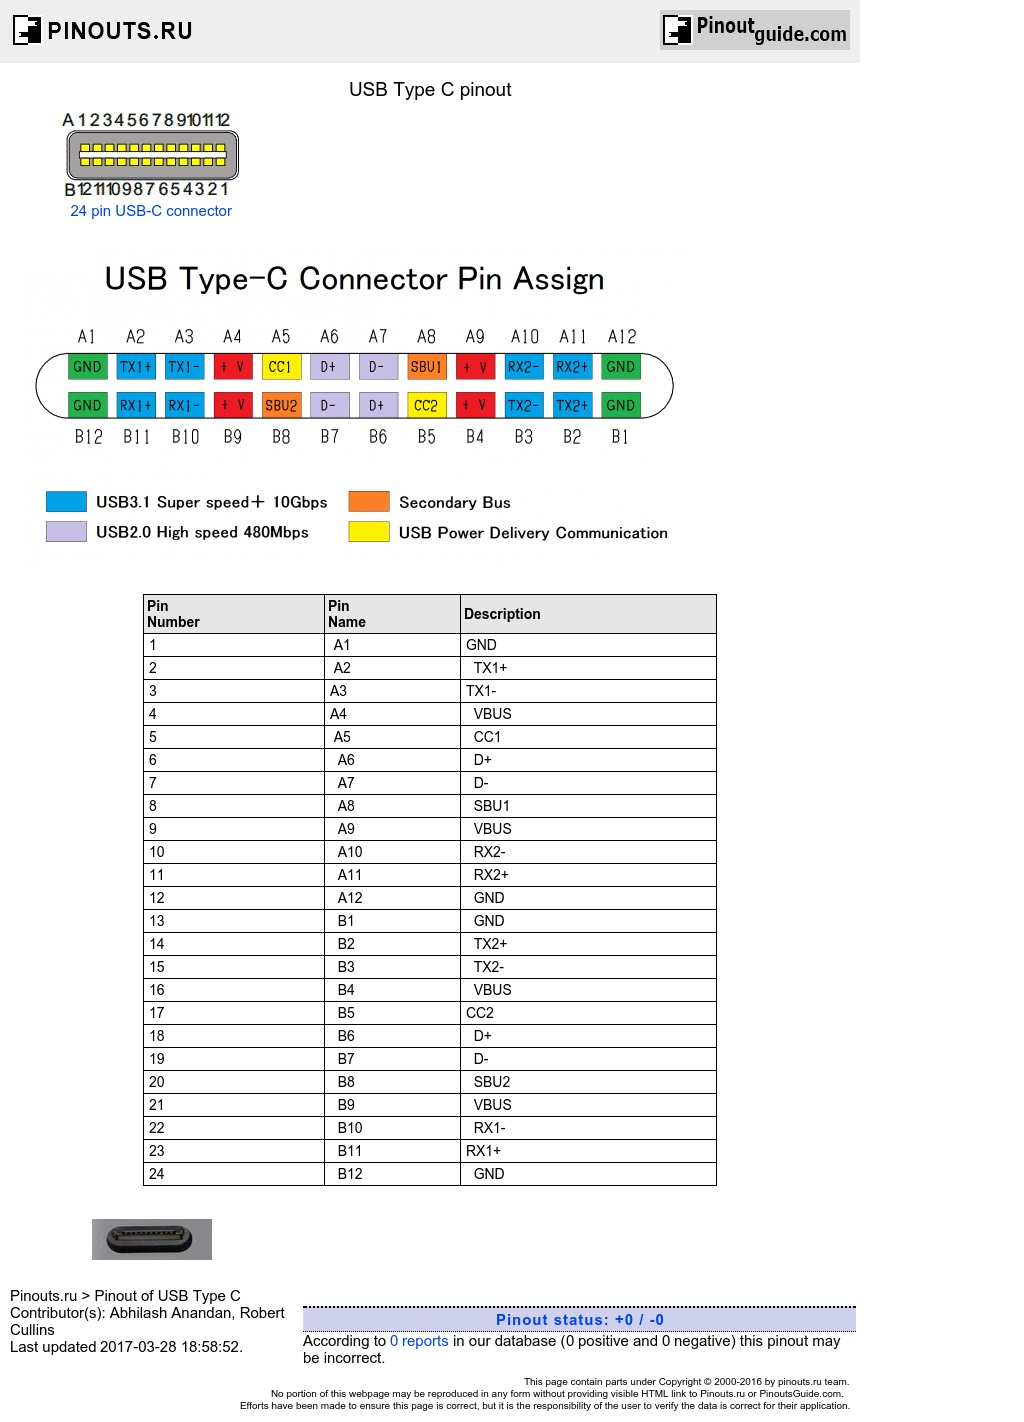 Usb Type C Pinout Diagram @ Pinoutguide - Usb C Wiring Diagram | Usb - Usb Type C Wiring Diagram